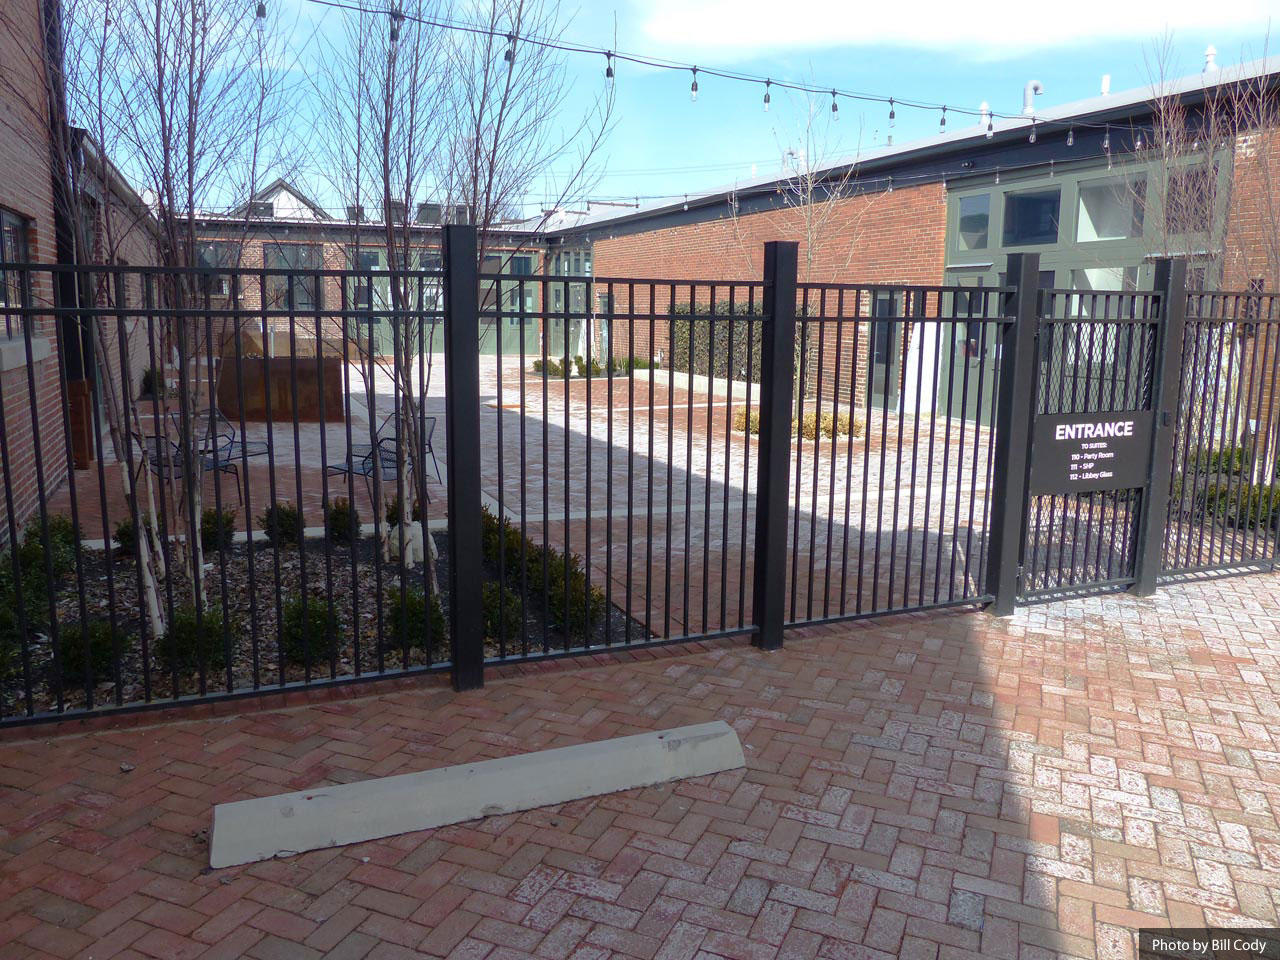 Budd Dairy exterior beer garden area with dark gray metal fencing.